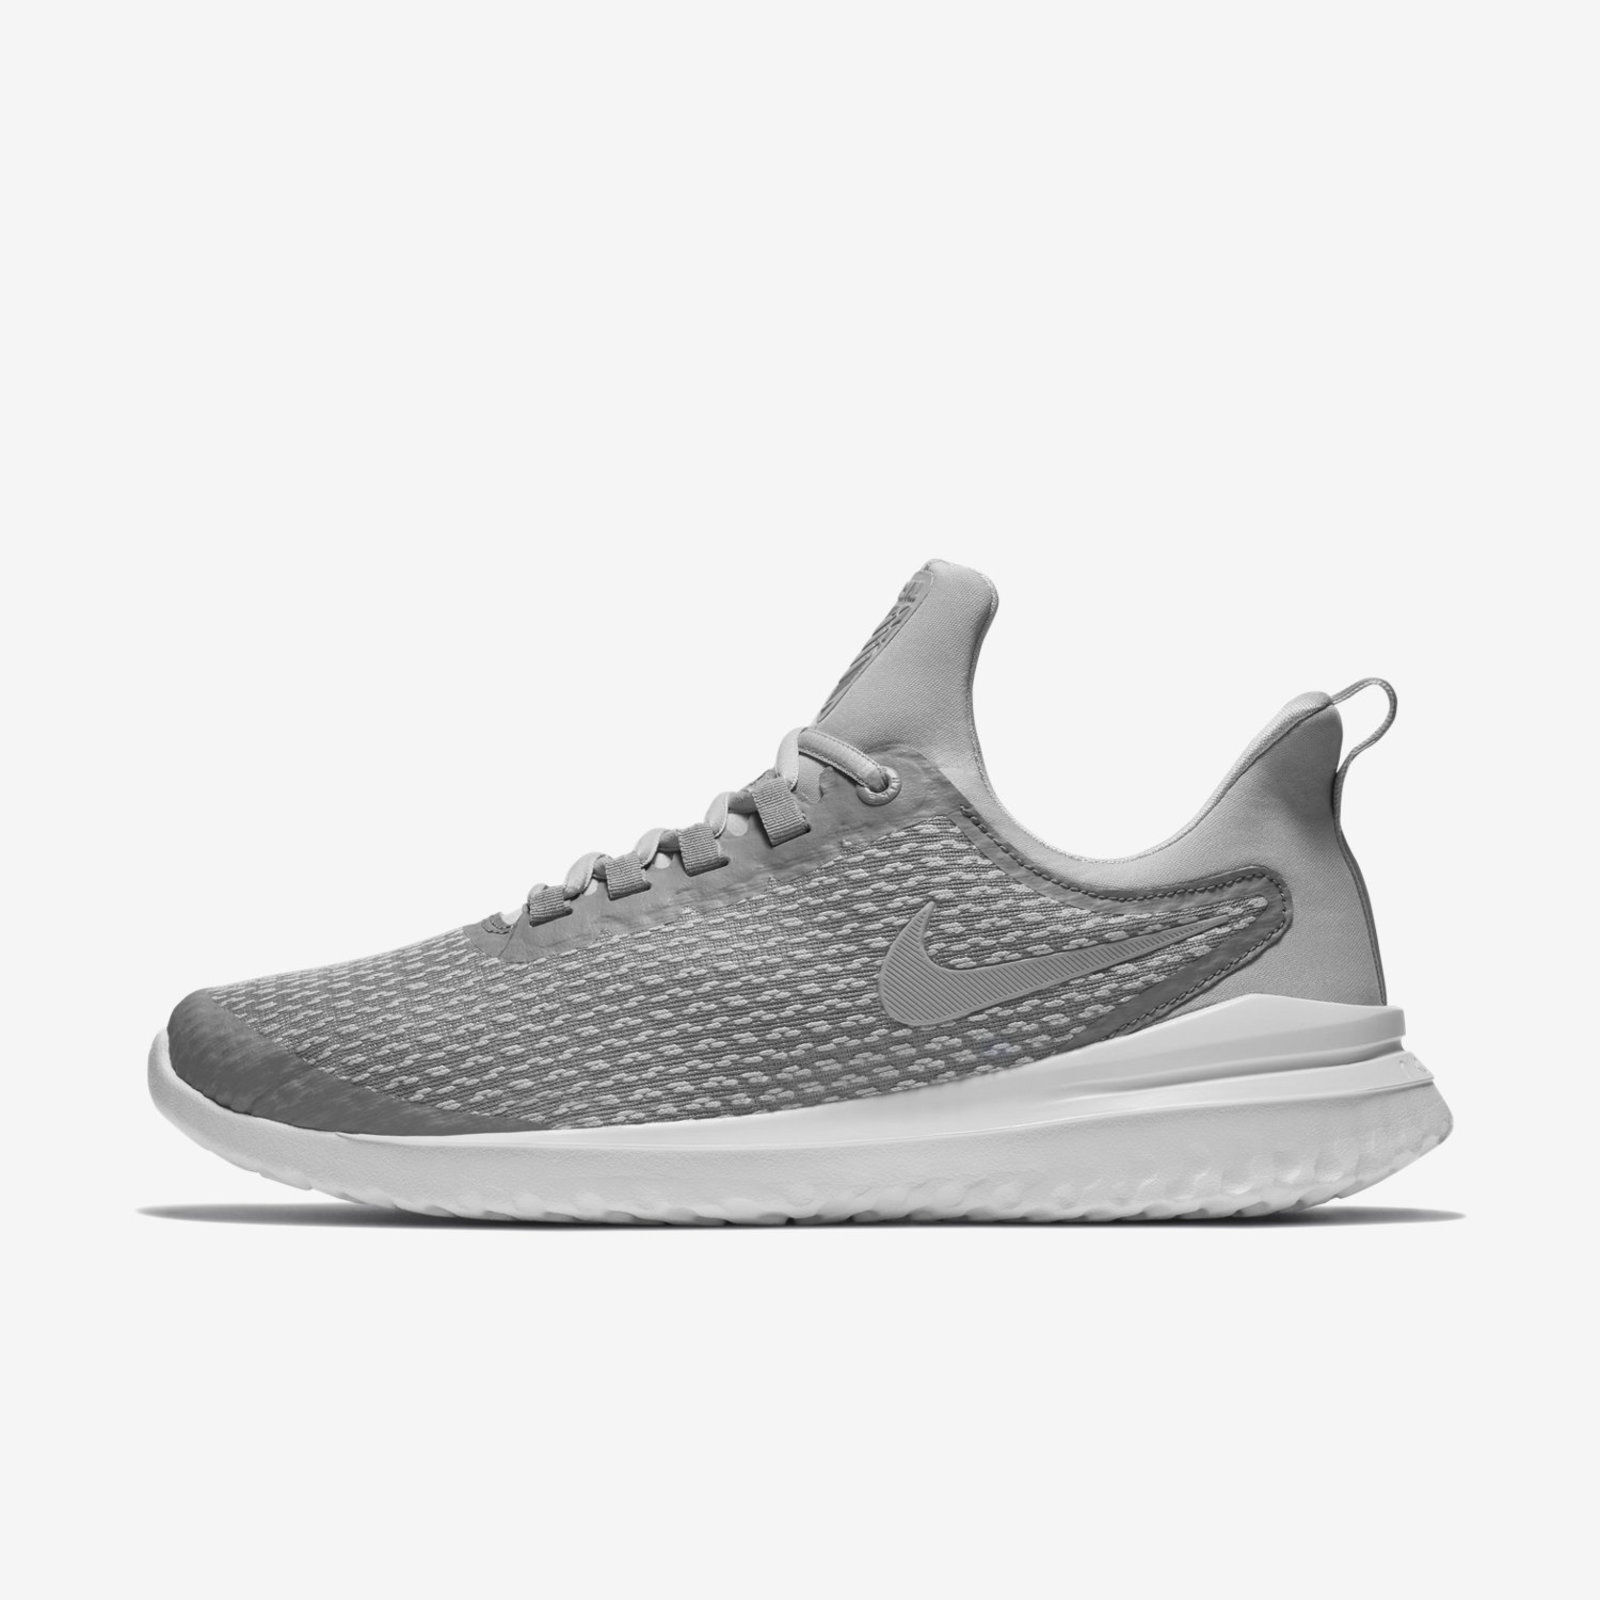 Nike Renew  Rival AA7400-006 Stealth Wolf Grey White Men's Running shoes NEW   choices with low price